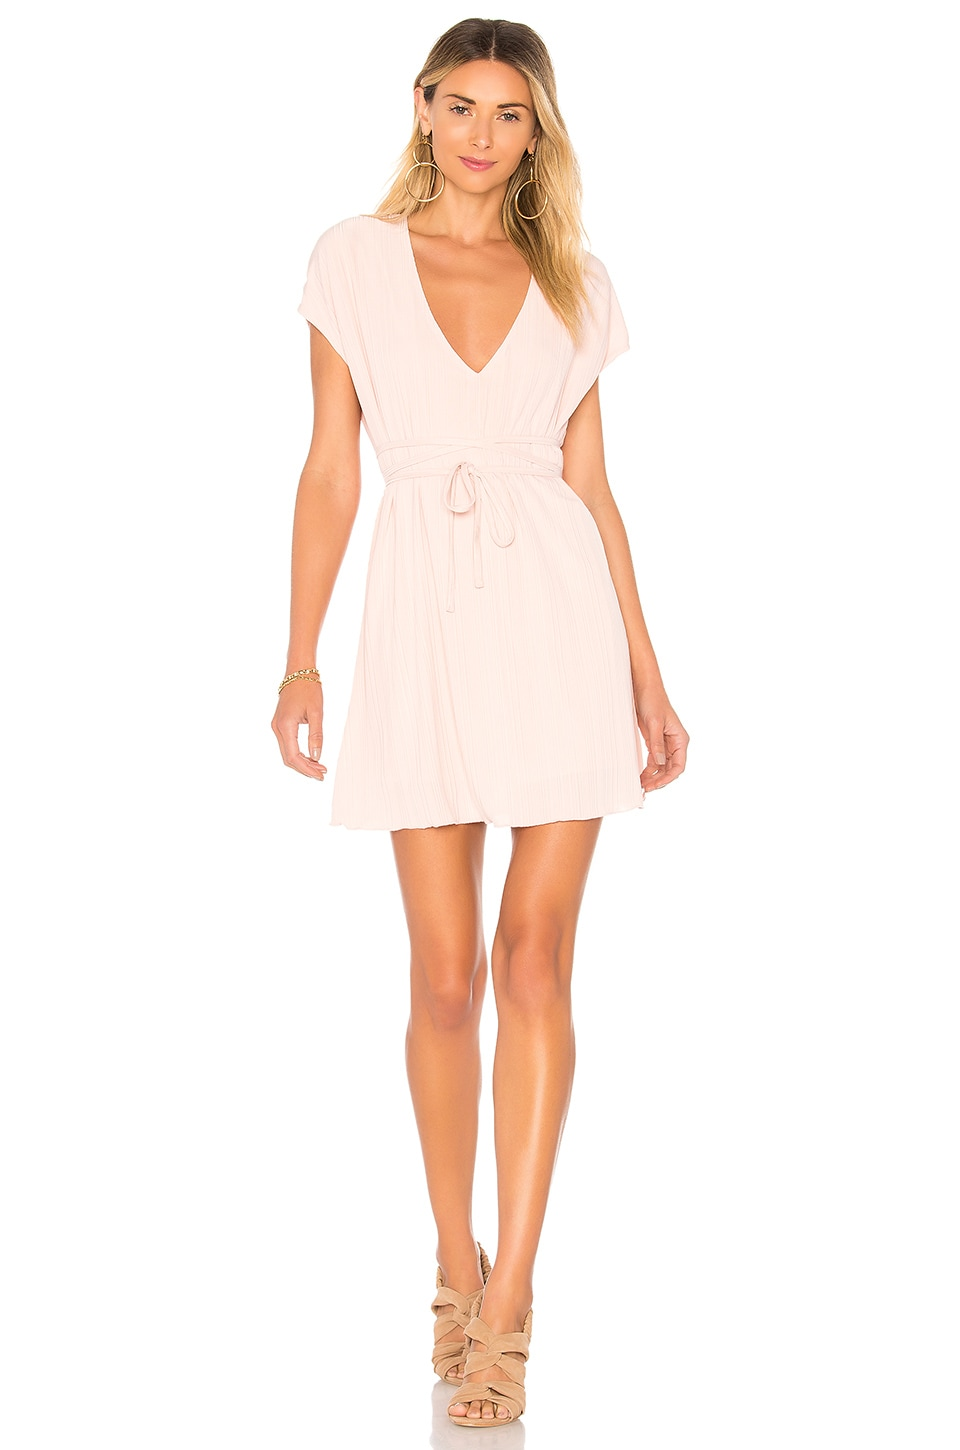 House of Harlow 1960 x REVOLVE Charlet Dress in Rose Pink